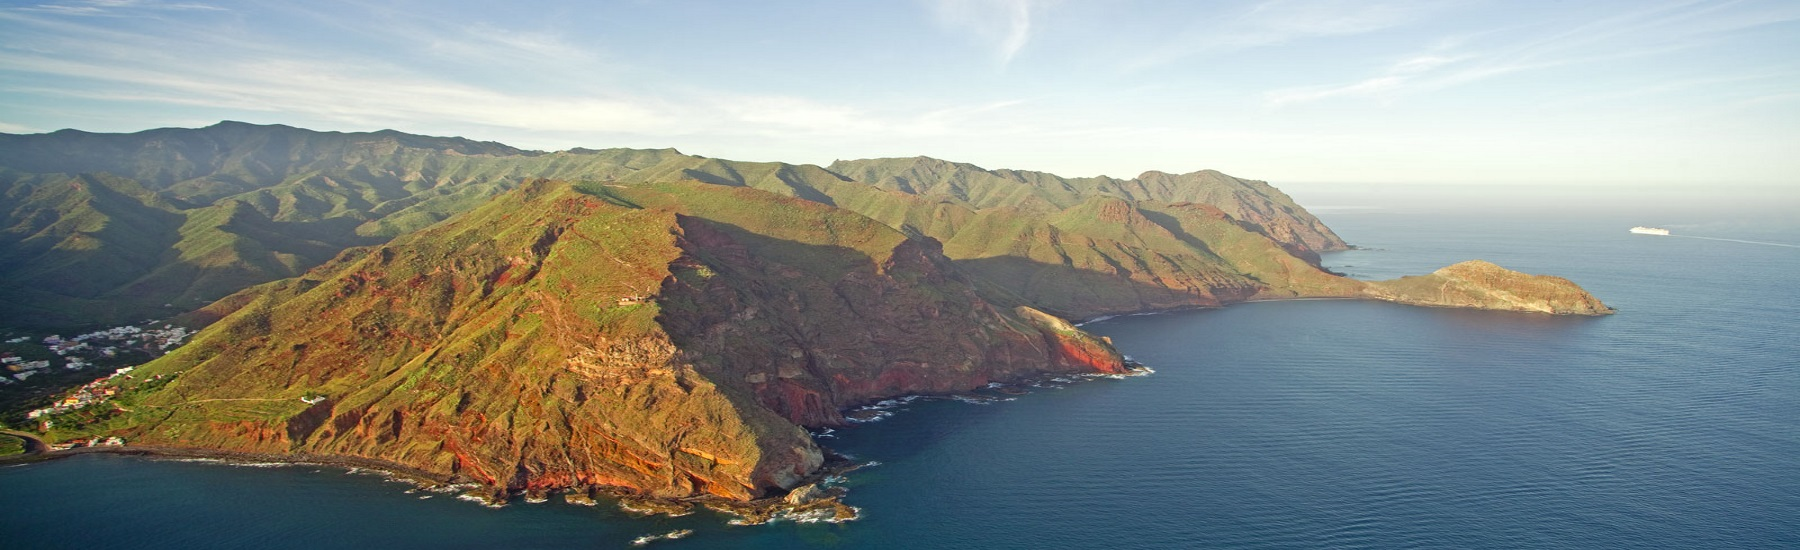 The Northern coast of Tenerife